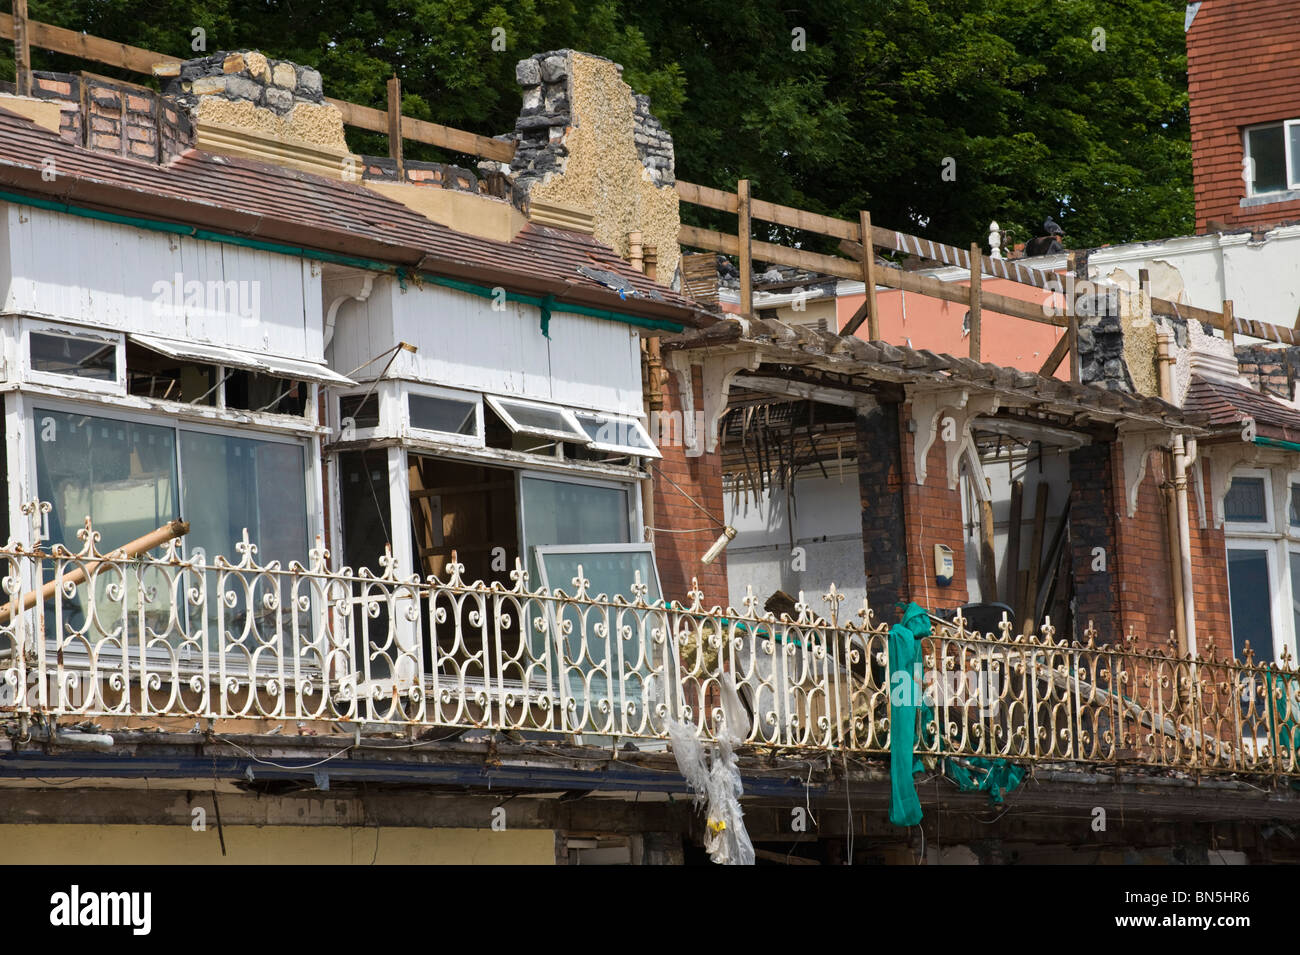 Derelict Edwardian building being demolished on the seafront at Penarth Vale of Glamorgan South Wales UK - Stock Image